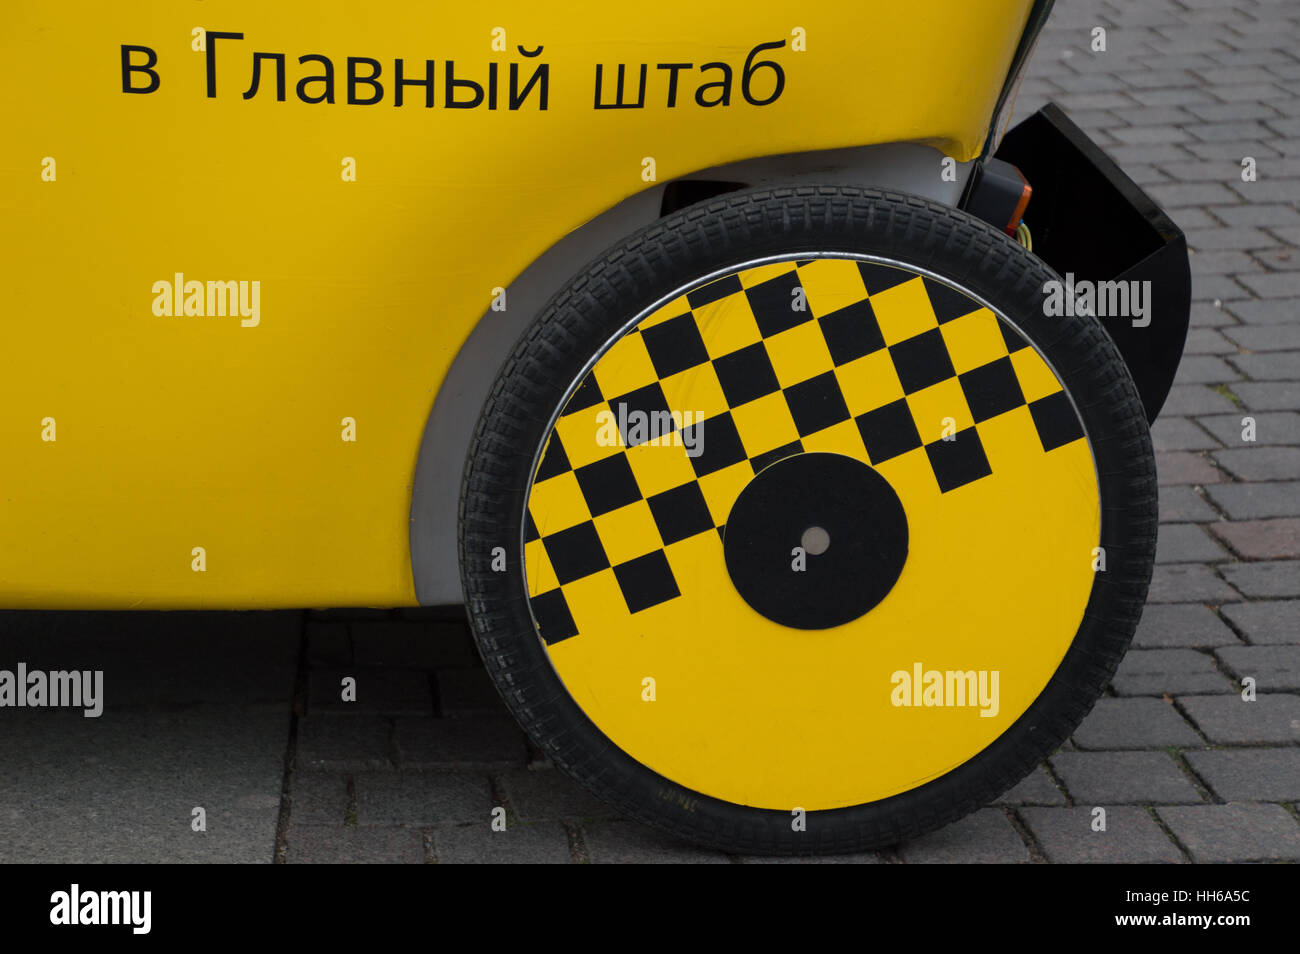 Close up of yellow and black checkerboard wheel on a taxi with Russian phrase on rear fender. Cab is parked on brick - Stock Image